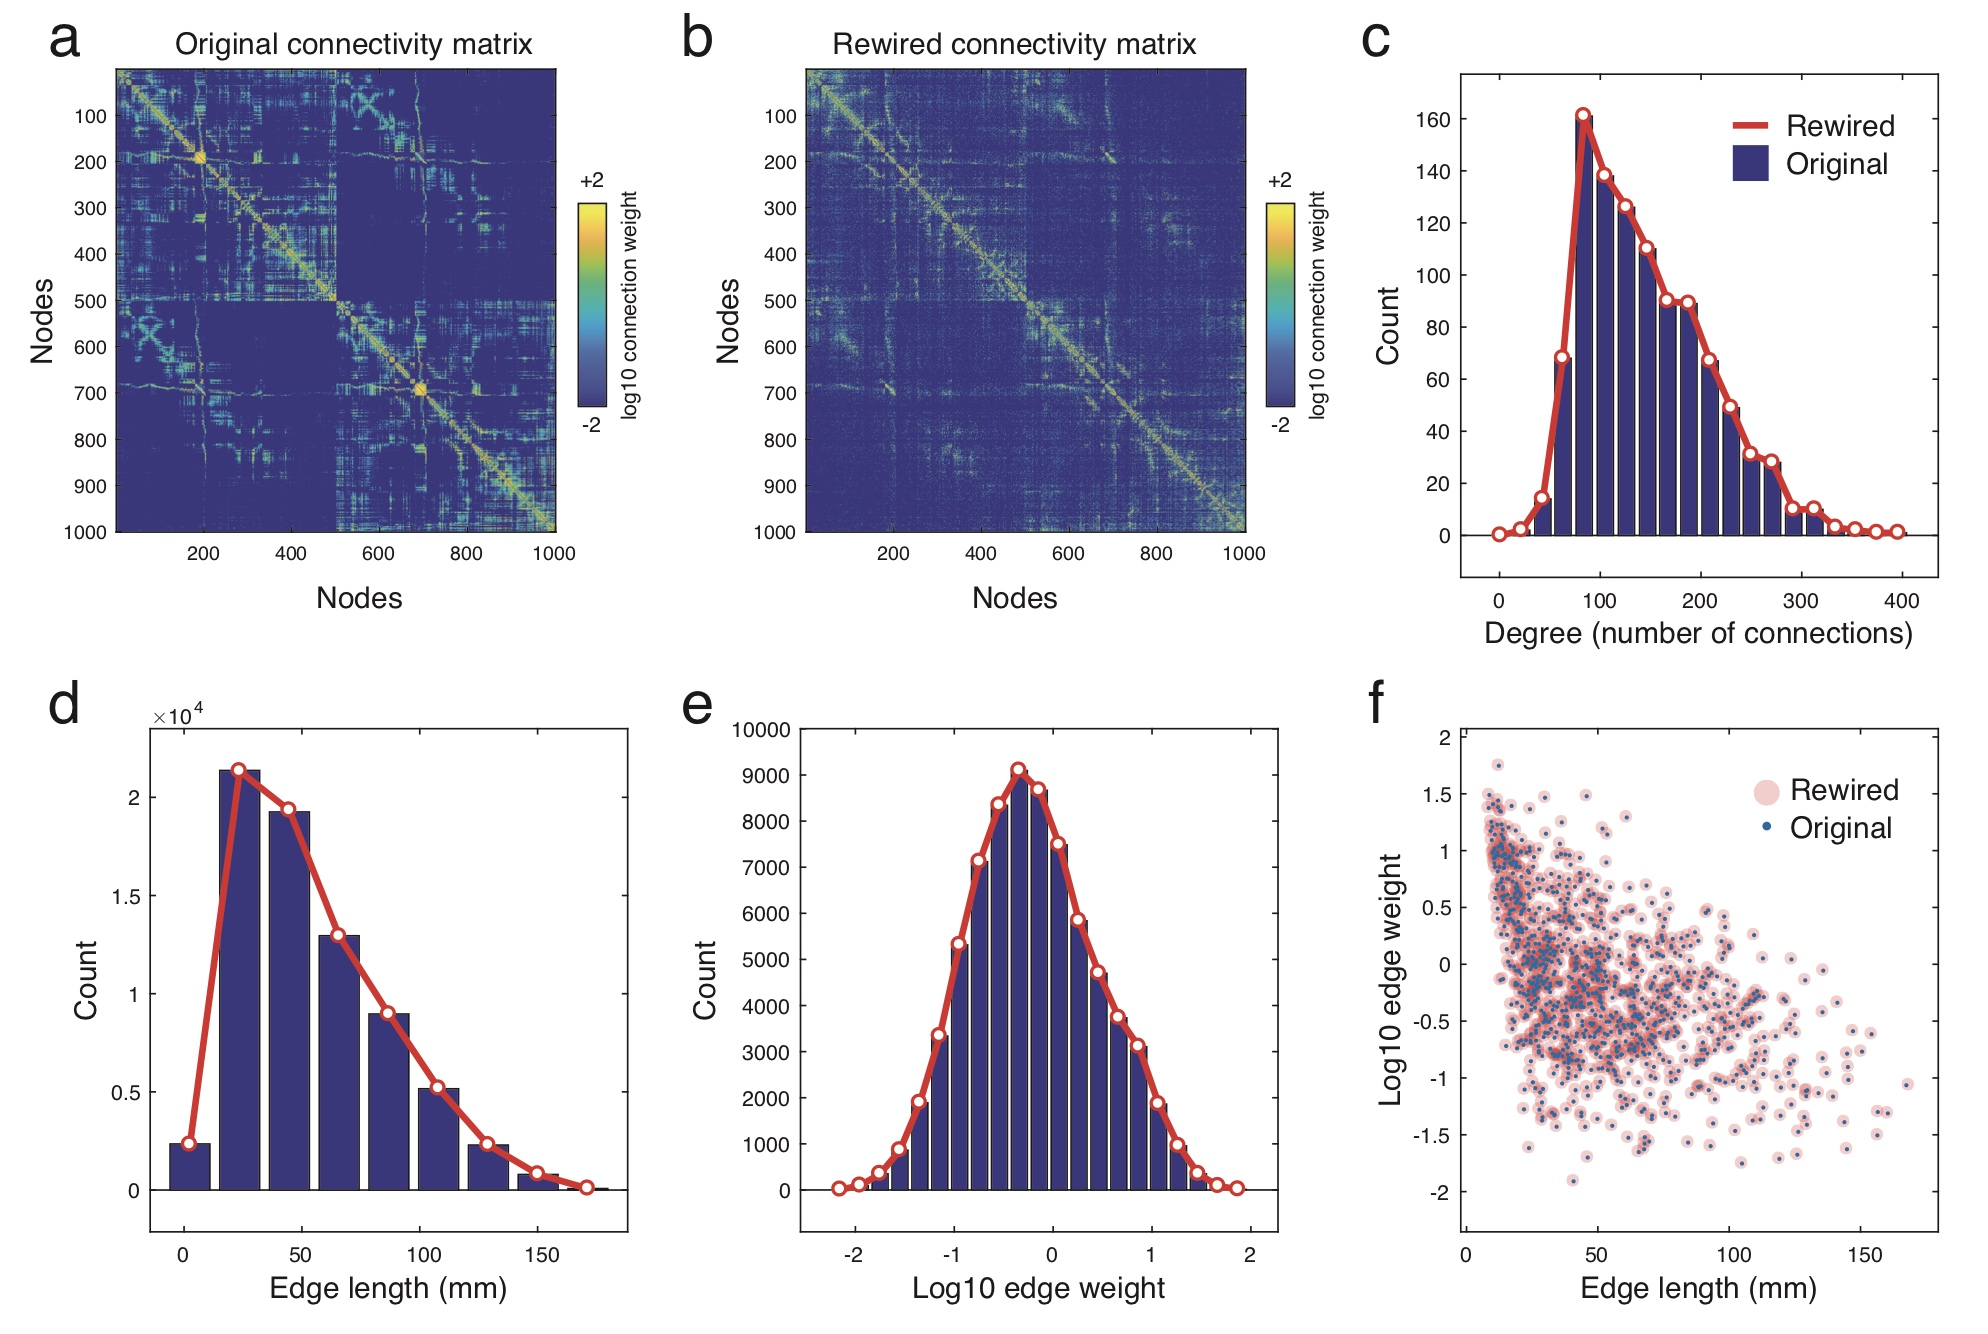 Matlab code for generating surrogate networks that preserve degree distribution (exactly), distribution of physical connection lengths (approximately), and the weight-length relationship (approximately). [ Link to code ]. If you use this code, please cite:  Betzel, R. F., & Bassett, D. S. (2018). Specificity and robustness of long-distance connections in weighted, interareal connectomes.  Proceedings of the National Academy of Sciences ,  115 (21), E4880-E4889. [ Link to paper ]